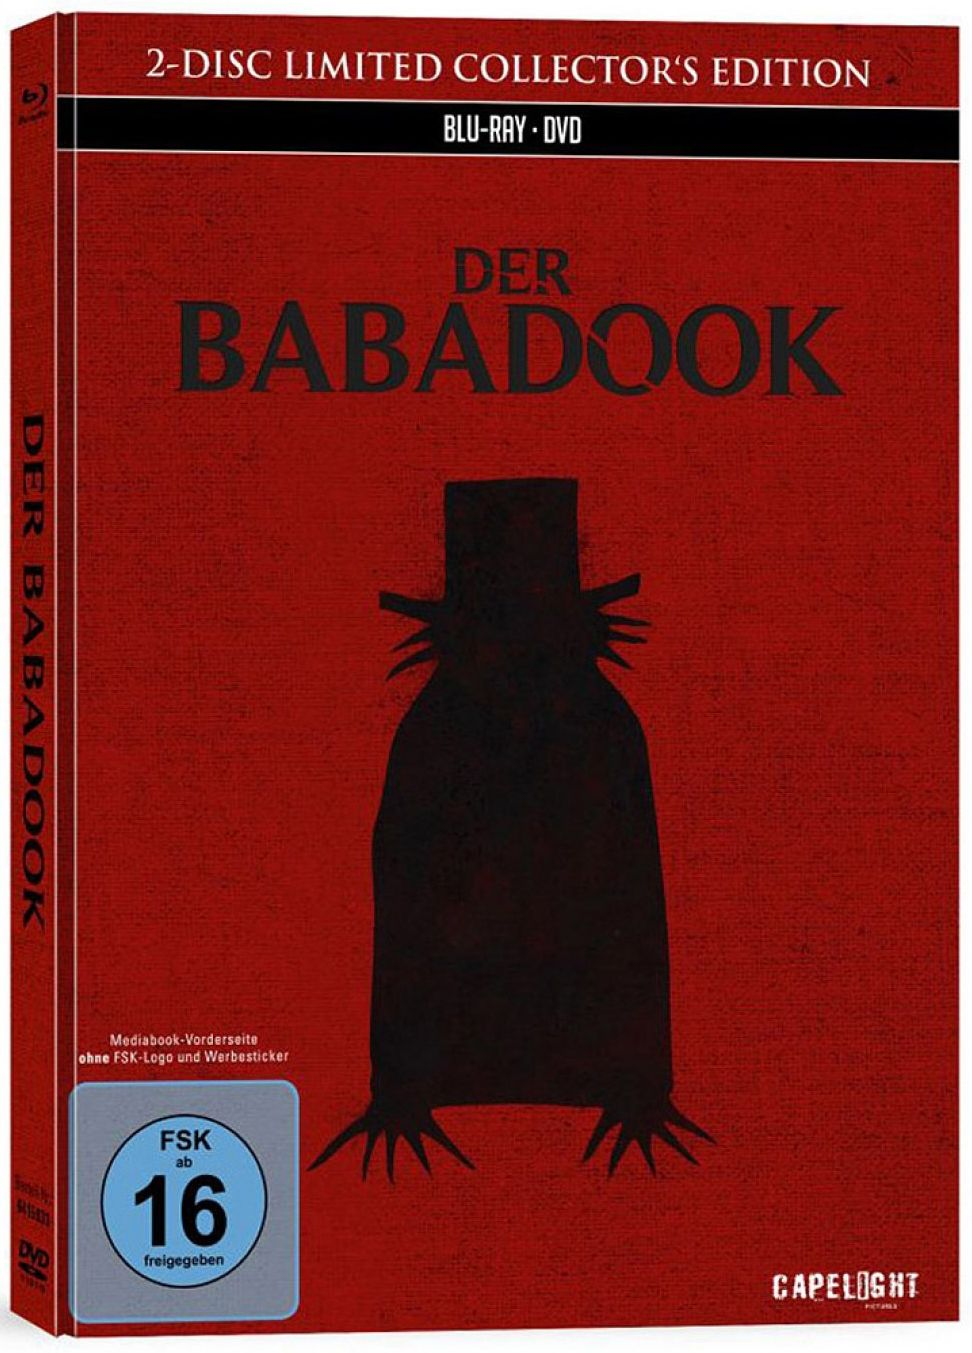 Babadook, Der (2-Disc Lim. Collectors Edition) (DVD + BLURAY)